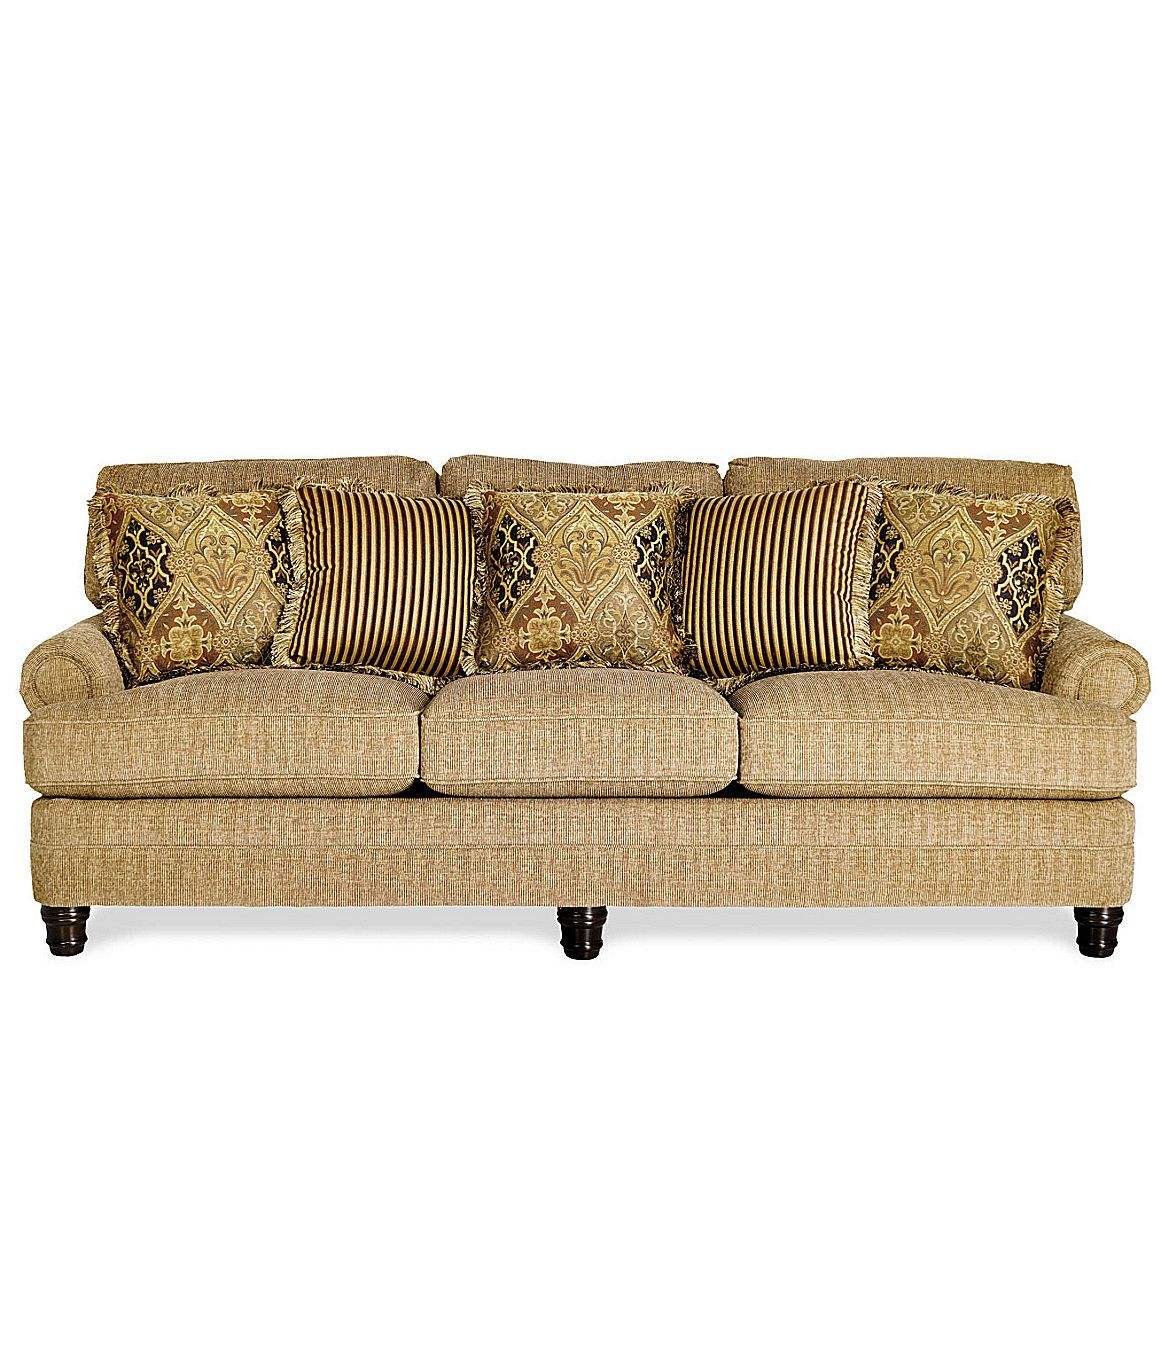 Bernhardt  Hamlin  Sofa on sale at Dillards. Bernhardt  Hamlin  Sofa on sale at Dillards for  1199    My Next